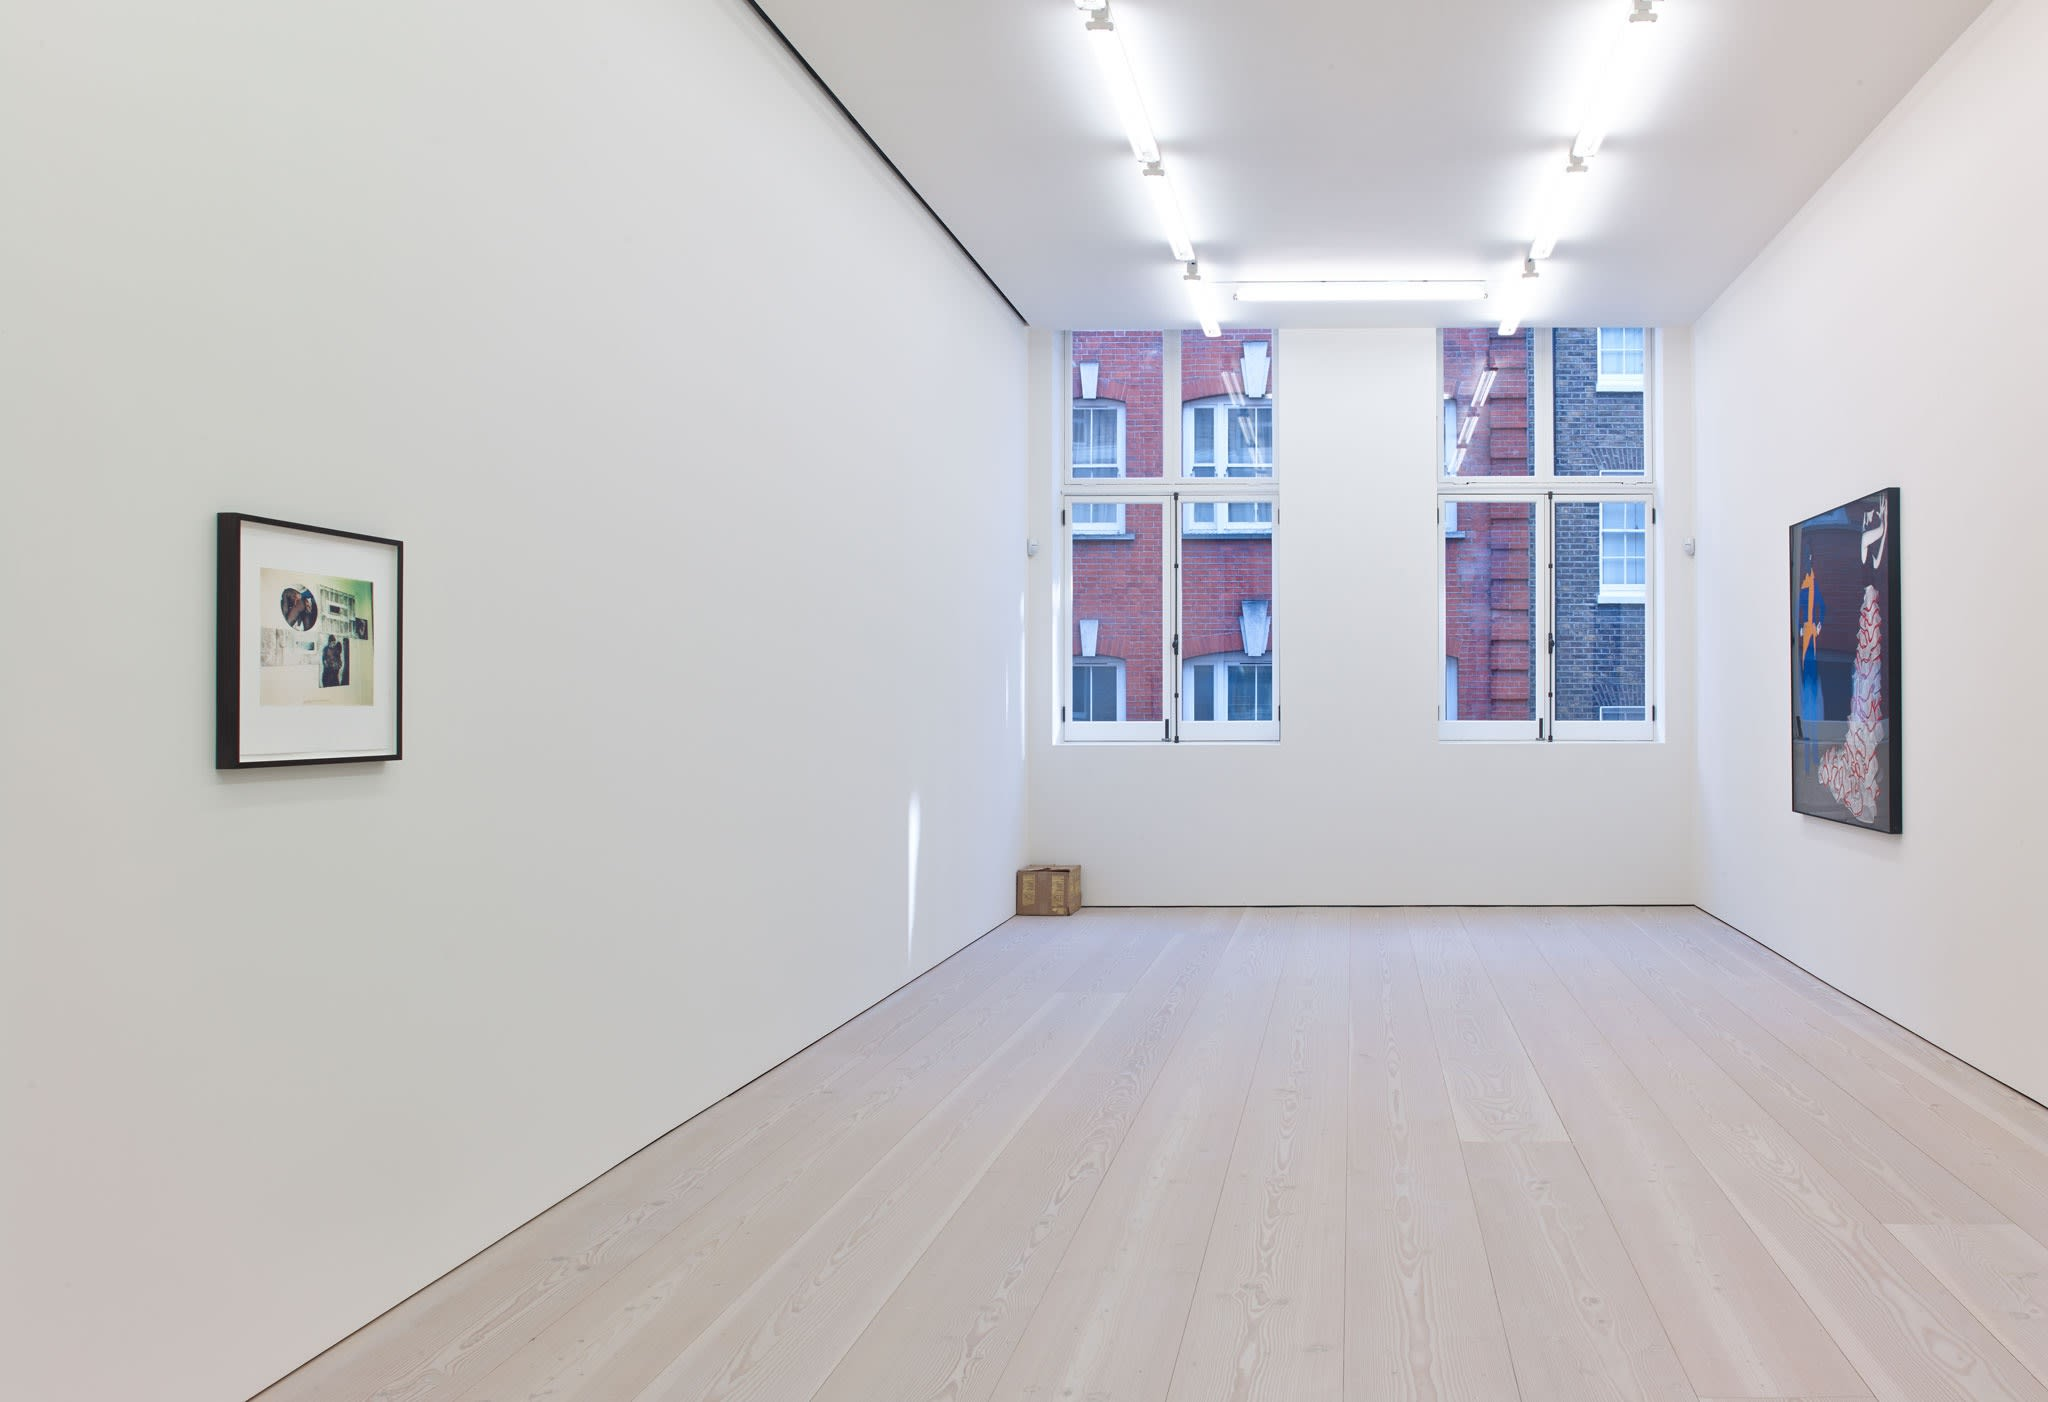 In a white room with windows straight ahead, a small print hangs on the left wall, a large colorful work on the right wall, and a small cardboard box sits in the left corner under the window.